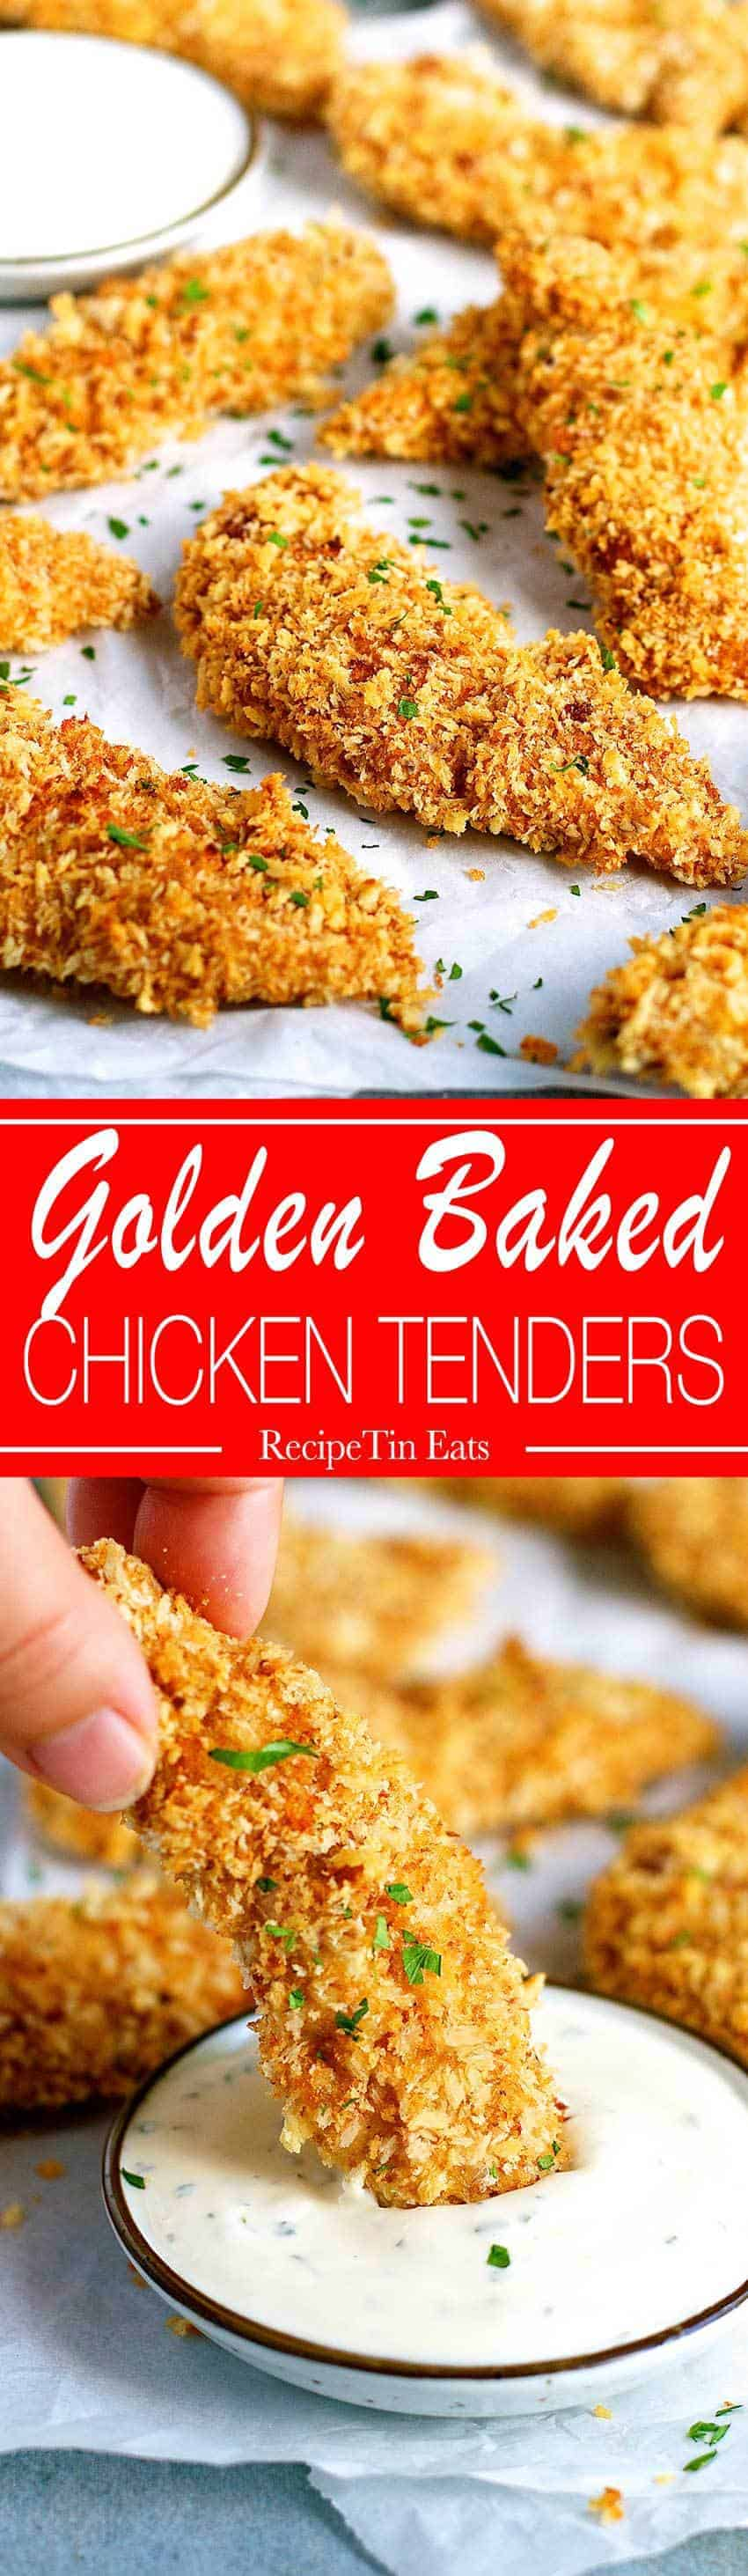 Truly Crispy Oven Baked Chicken Tenders Recipetin Eats